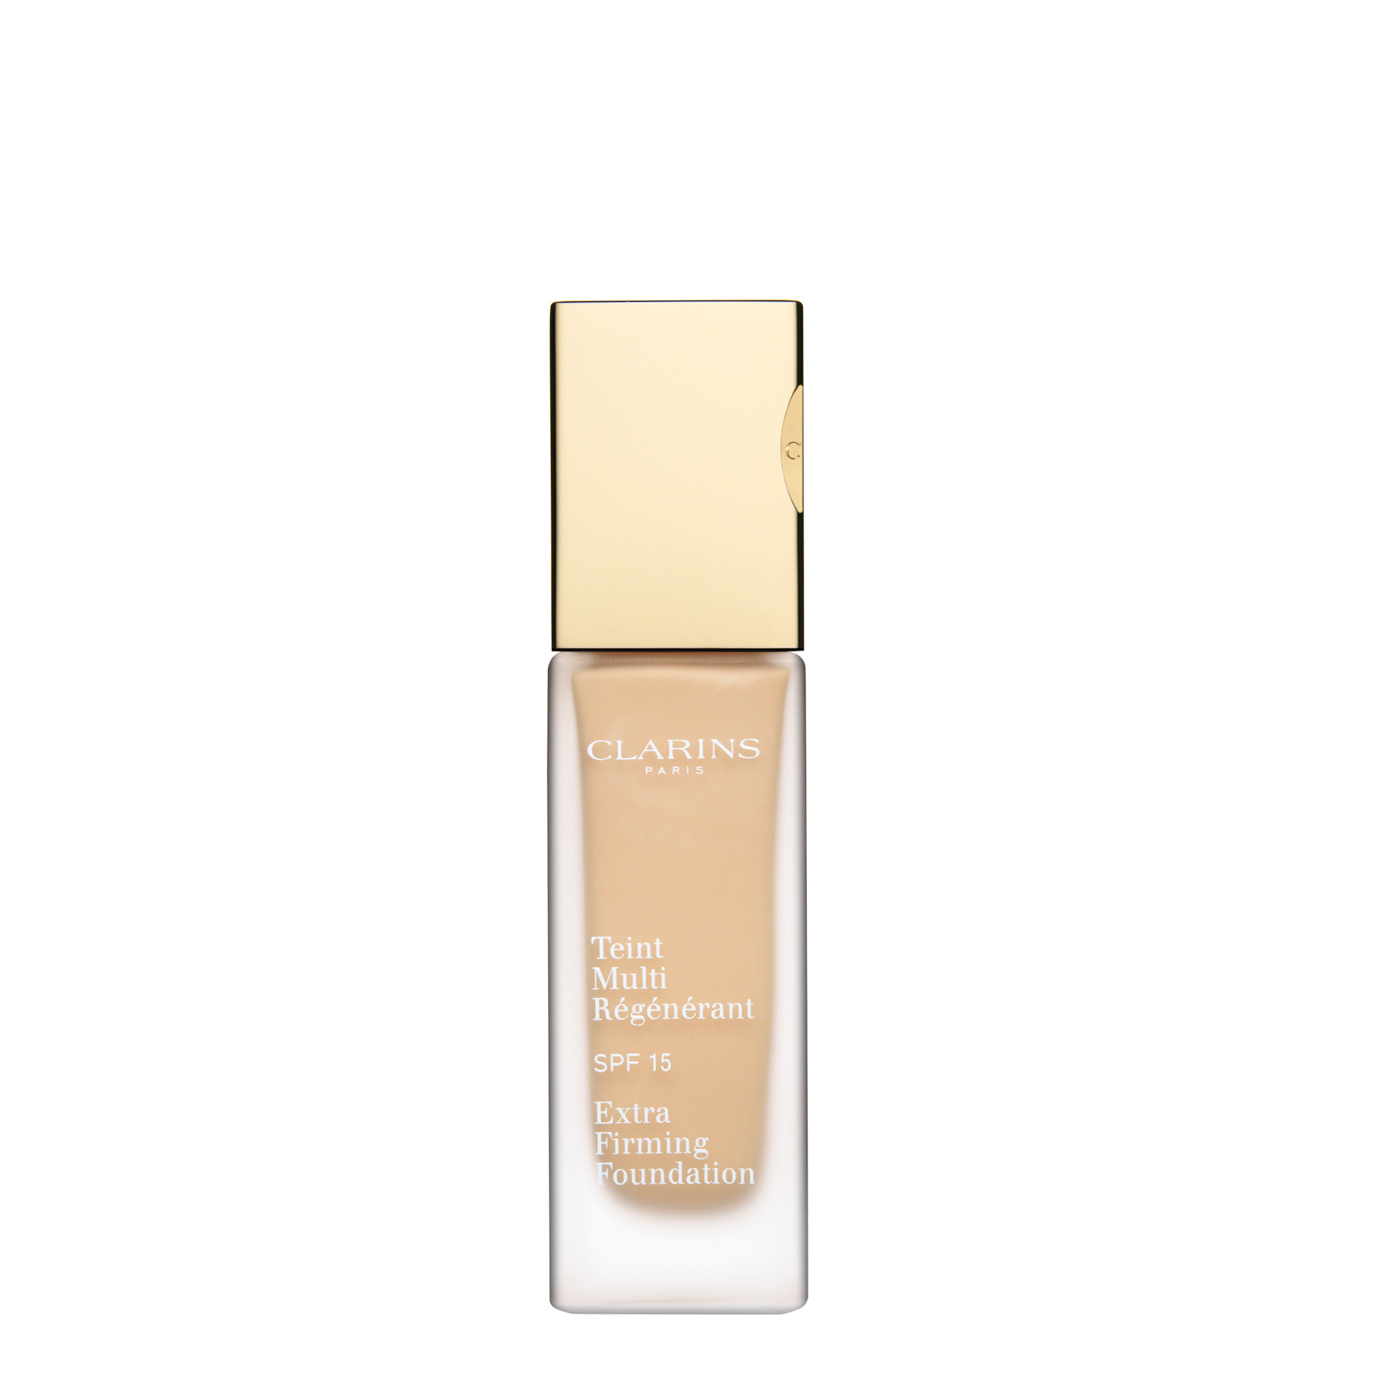 Extra Firming Foundation Spf15 Age Fighting And Skin Clinique Super Powder Double Face Makeup Matte Ivory 01 Firming20foundation20spf2015